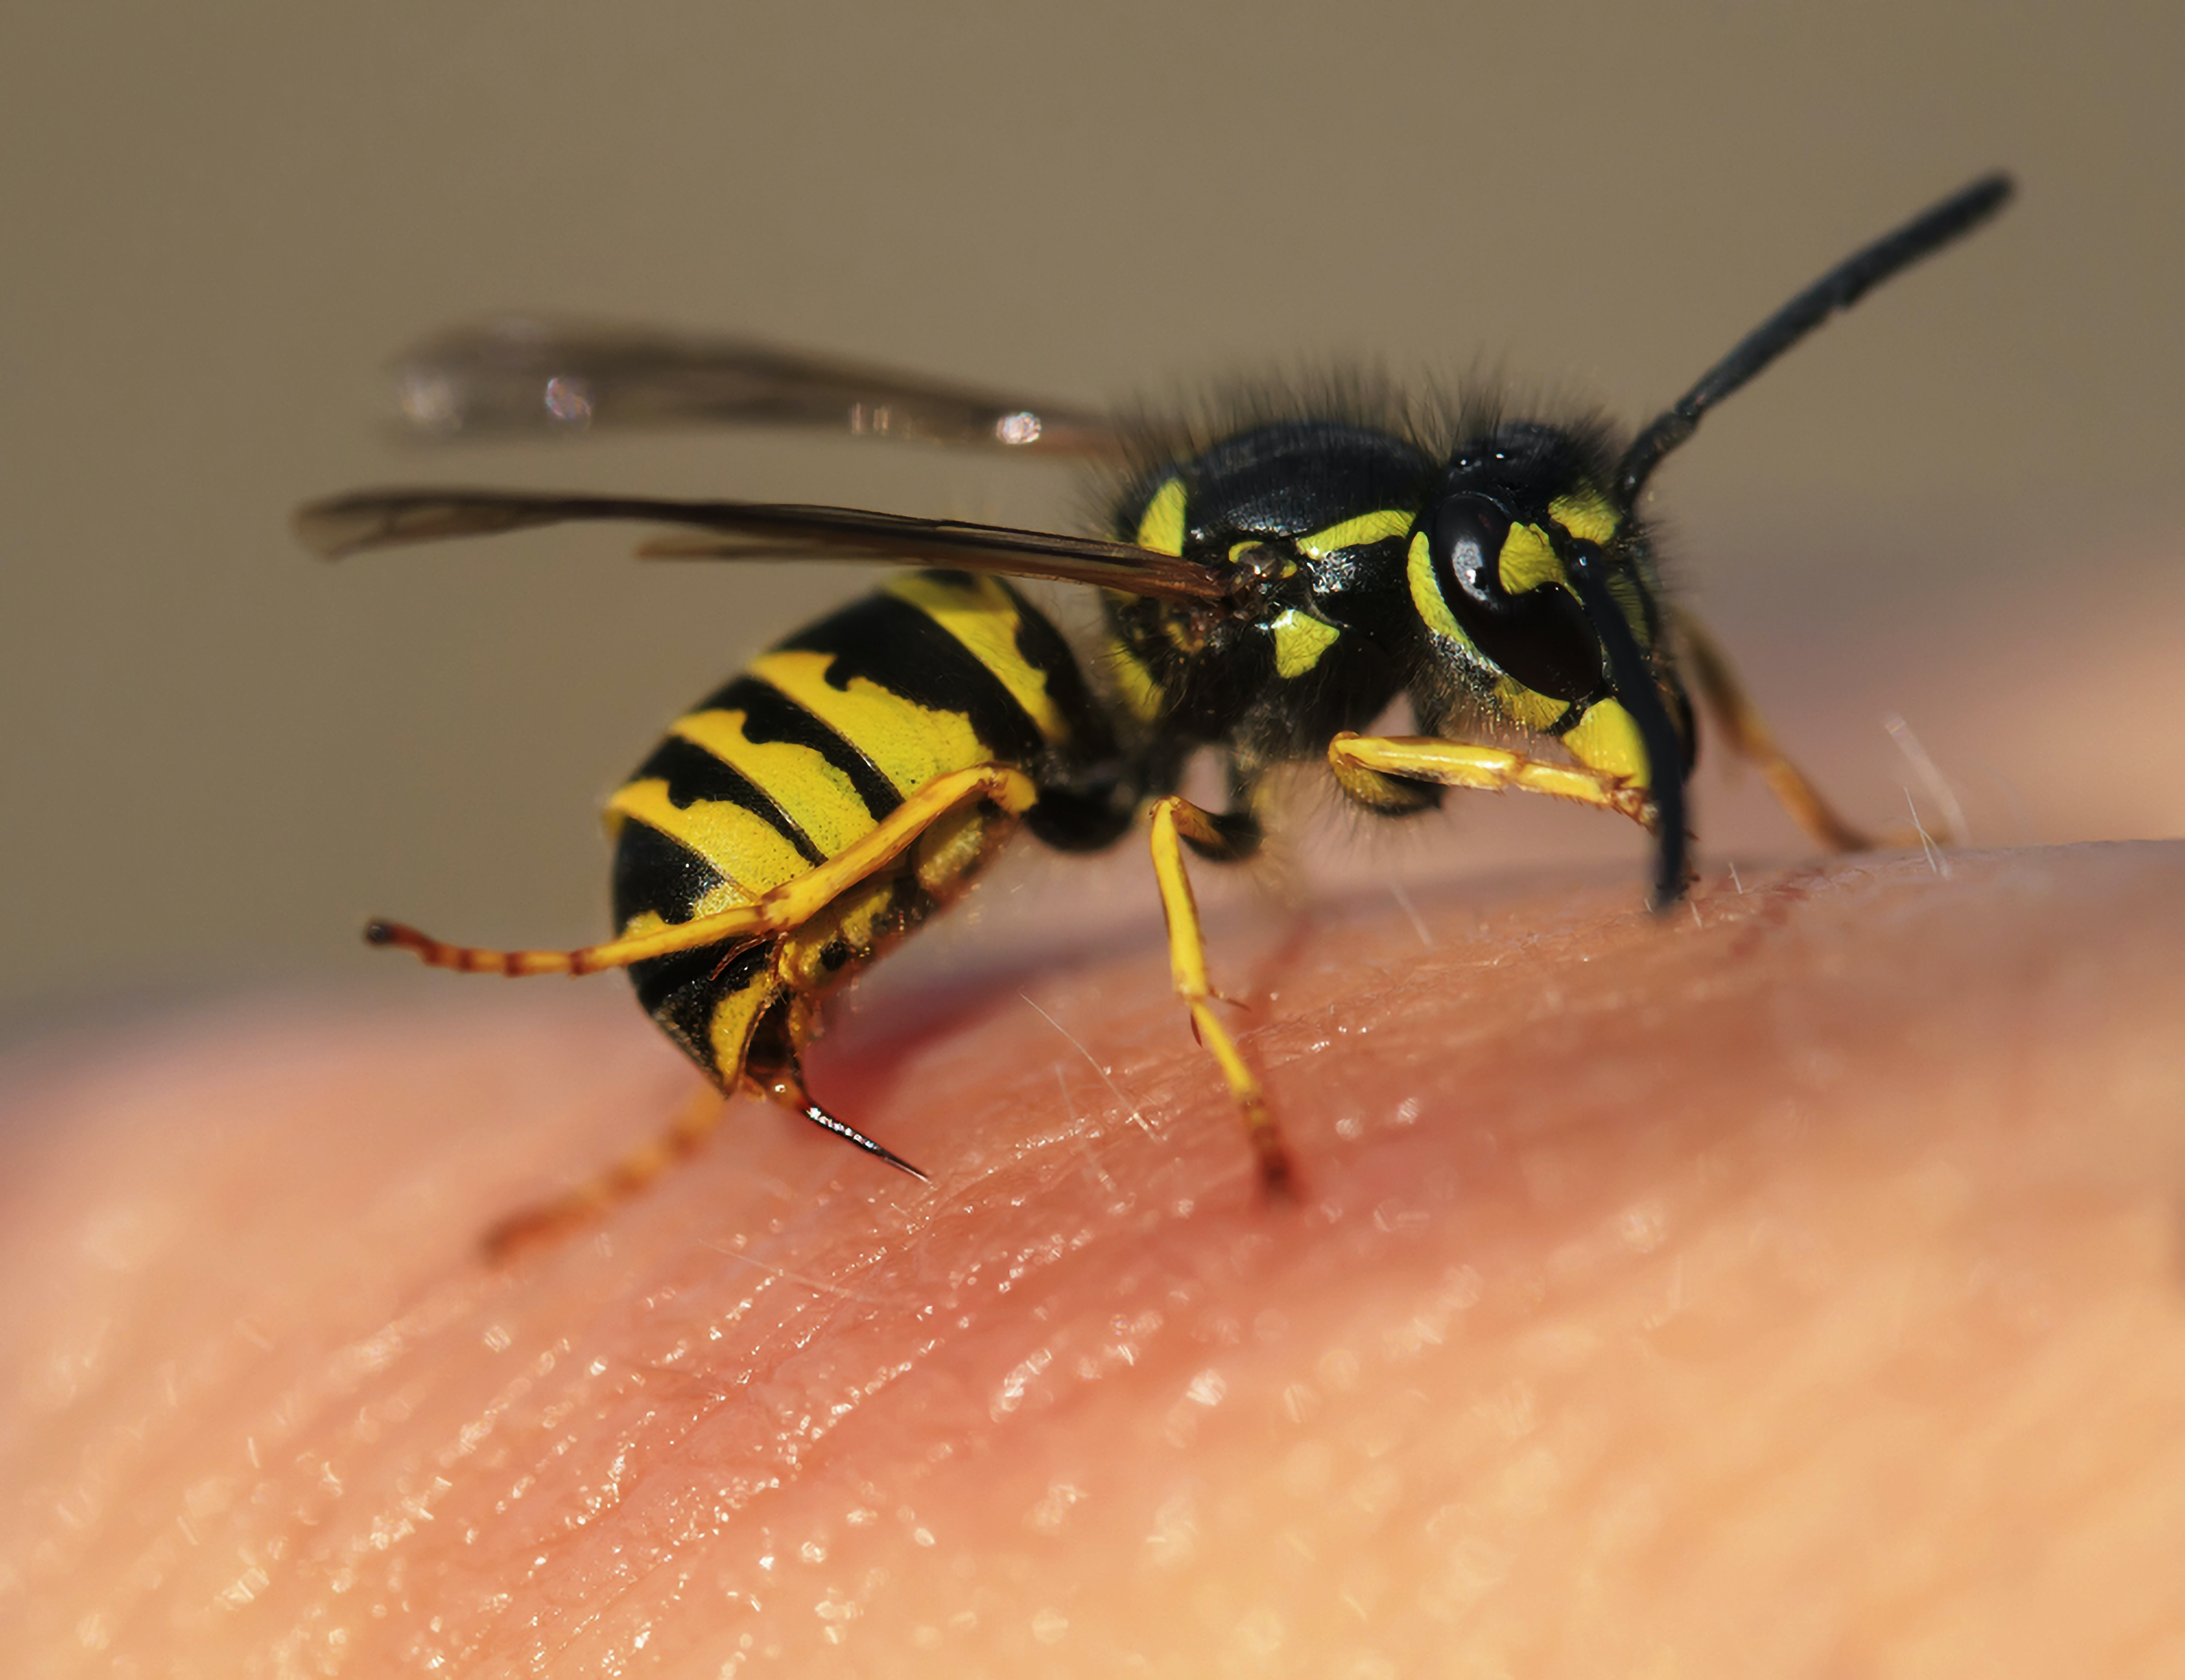 Wasp on skin with stinger out